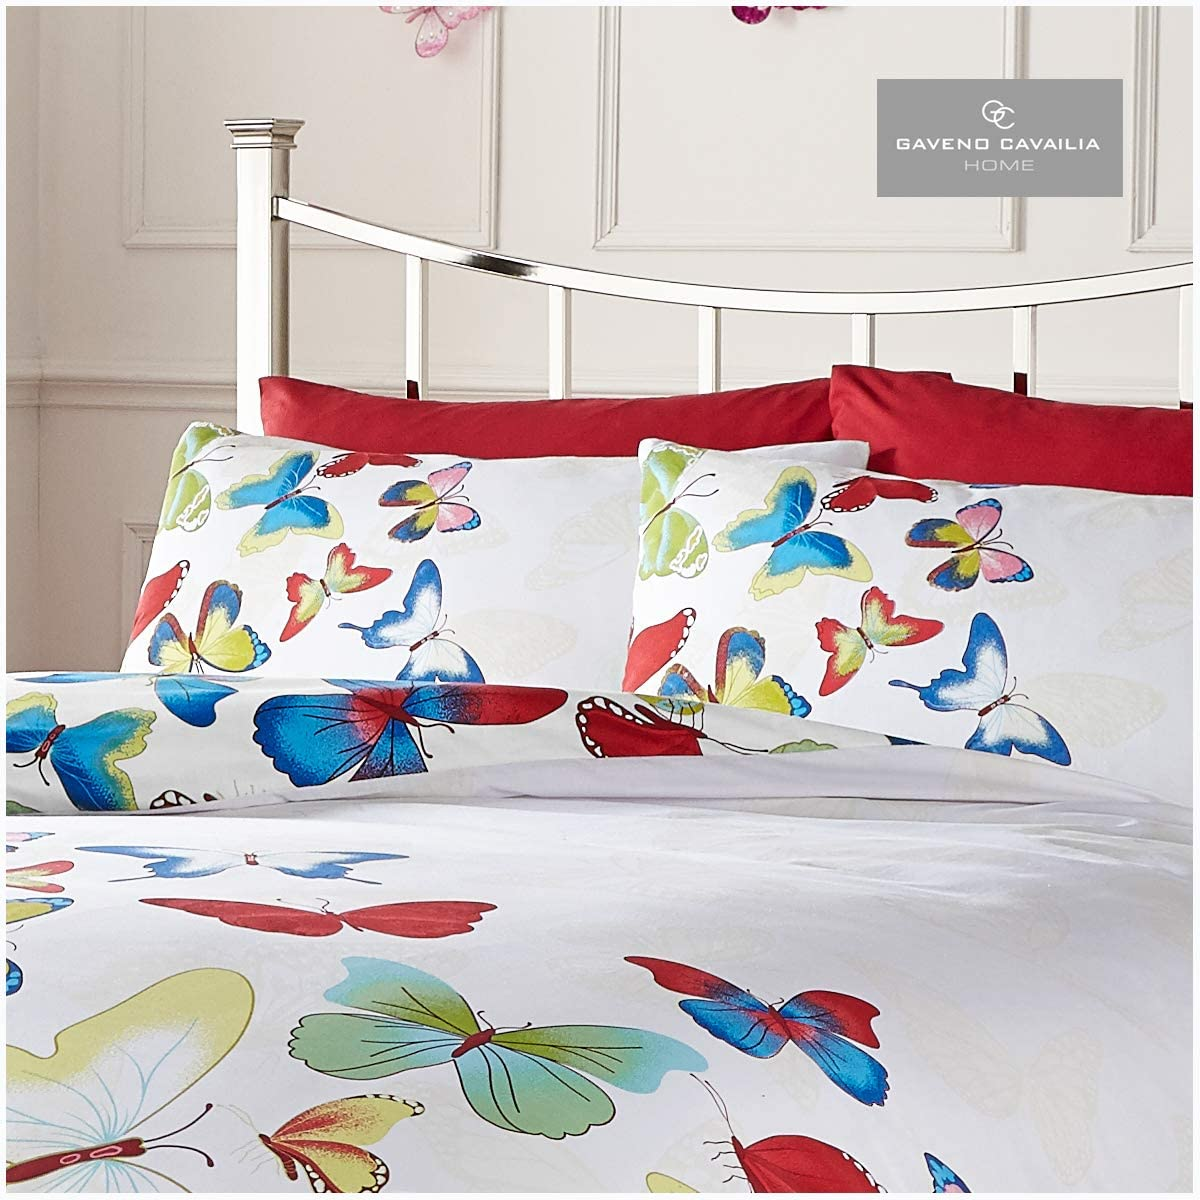 1 Quilt Cover and Fitted Sheet with 2 Matching Pillow Cases Gaveno Cavailia Modern Bedding Double Complete Set Butterfly-Rainbow